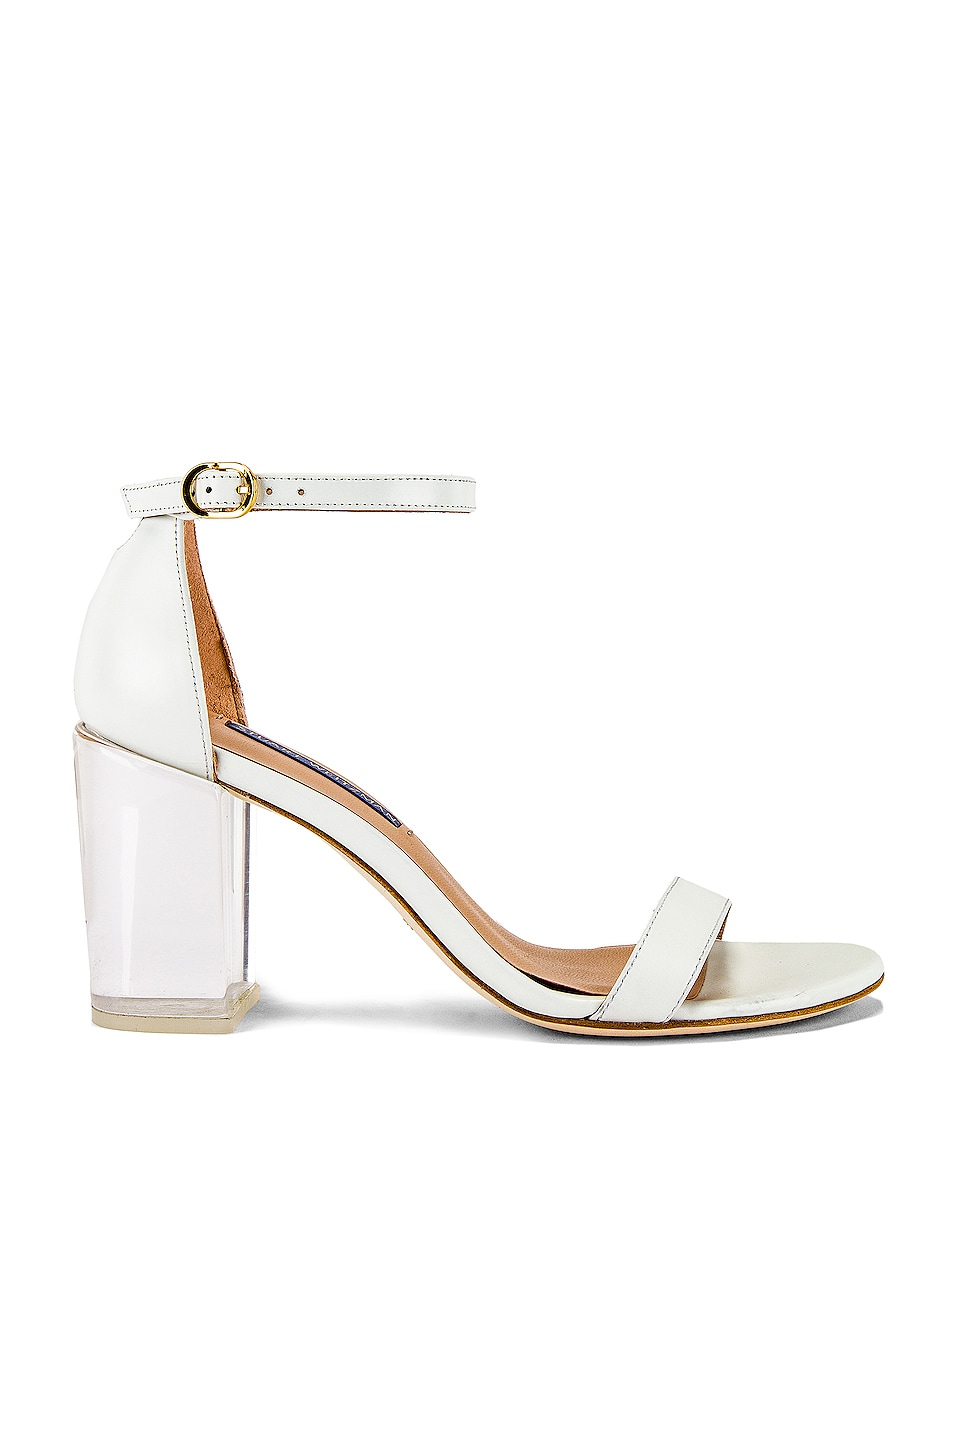 Stuart Weitzman Nearly Nude Lucite Sandal in White